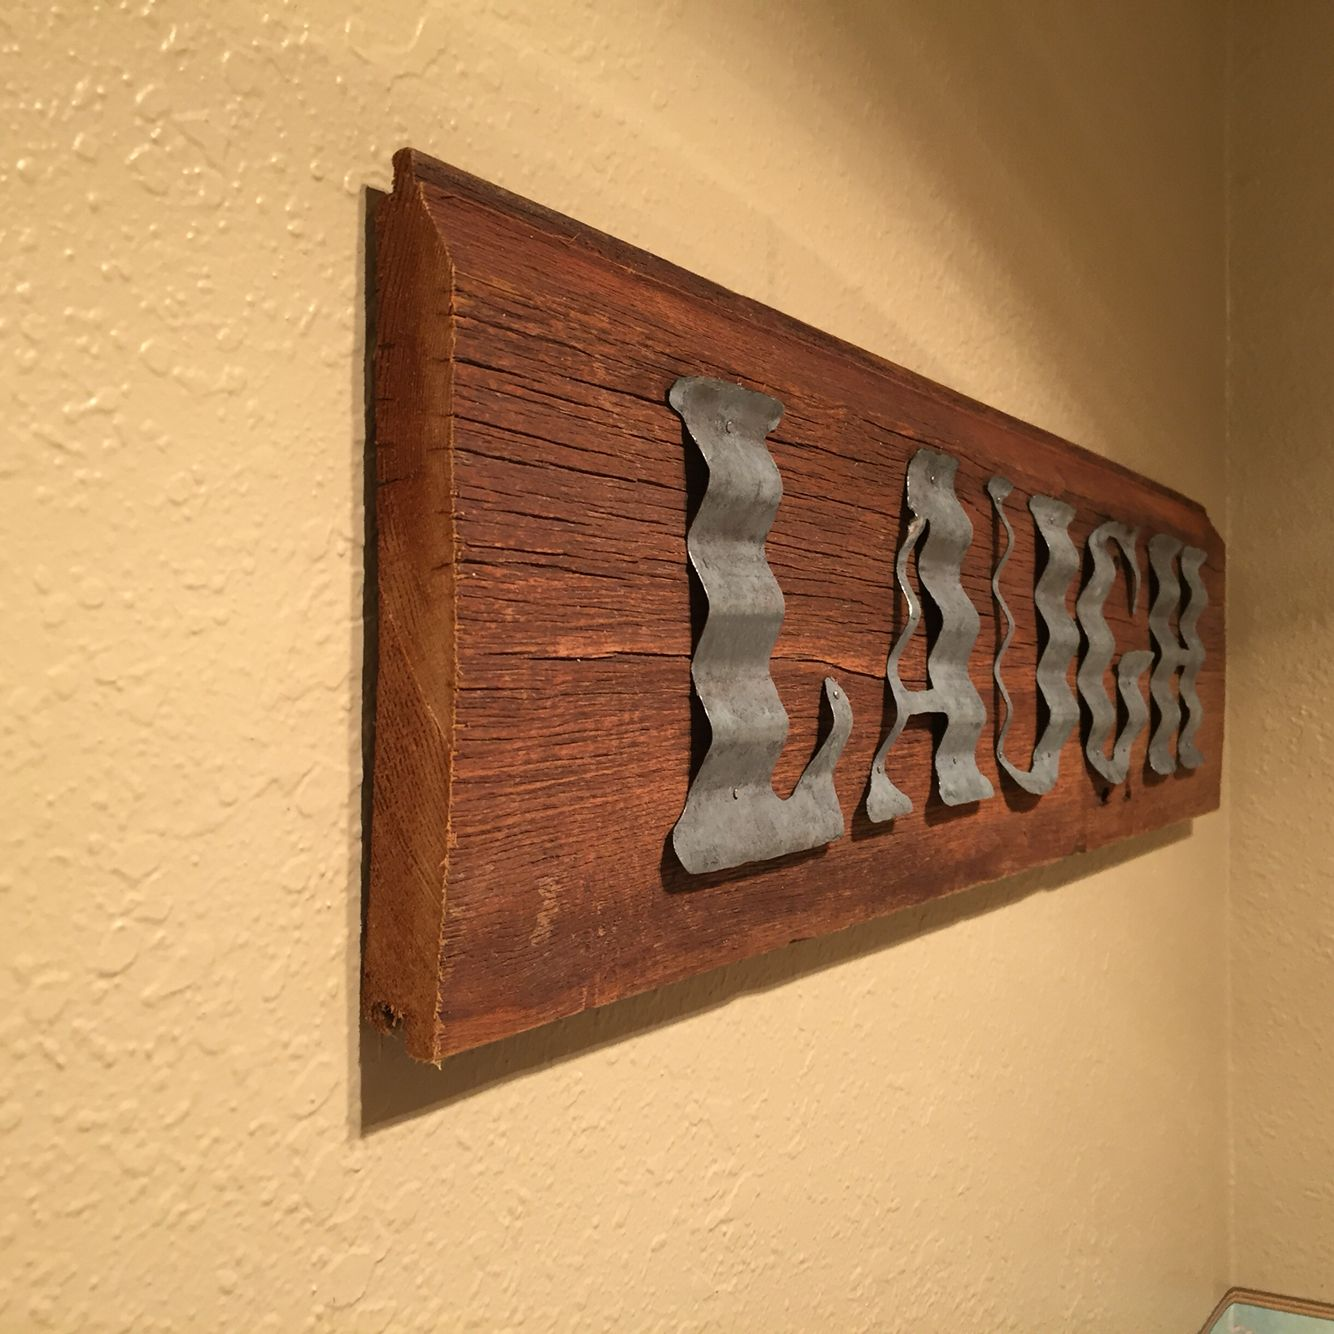 Old barn wood and galvanized steel sign